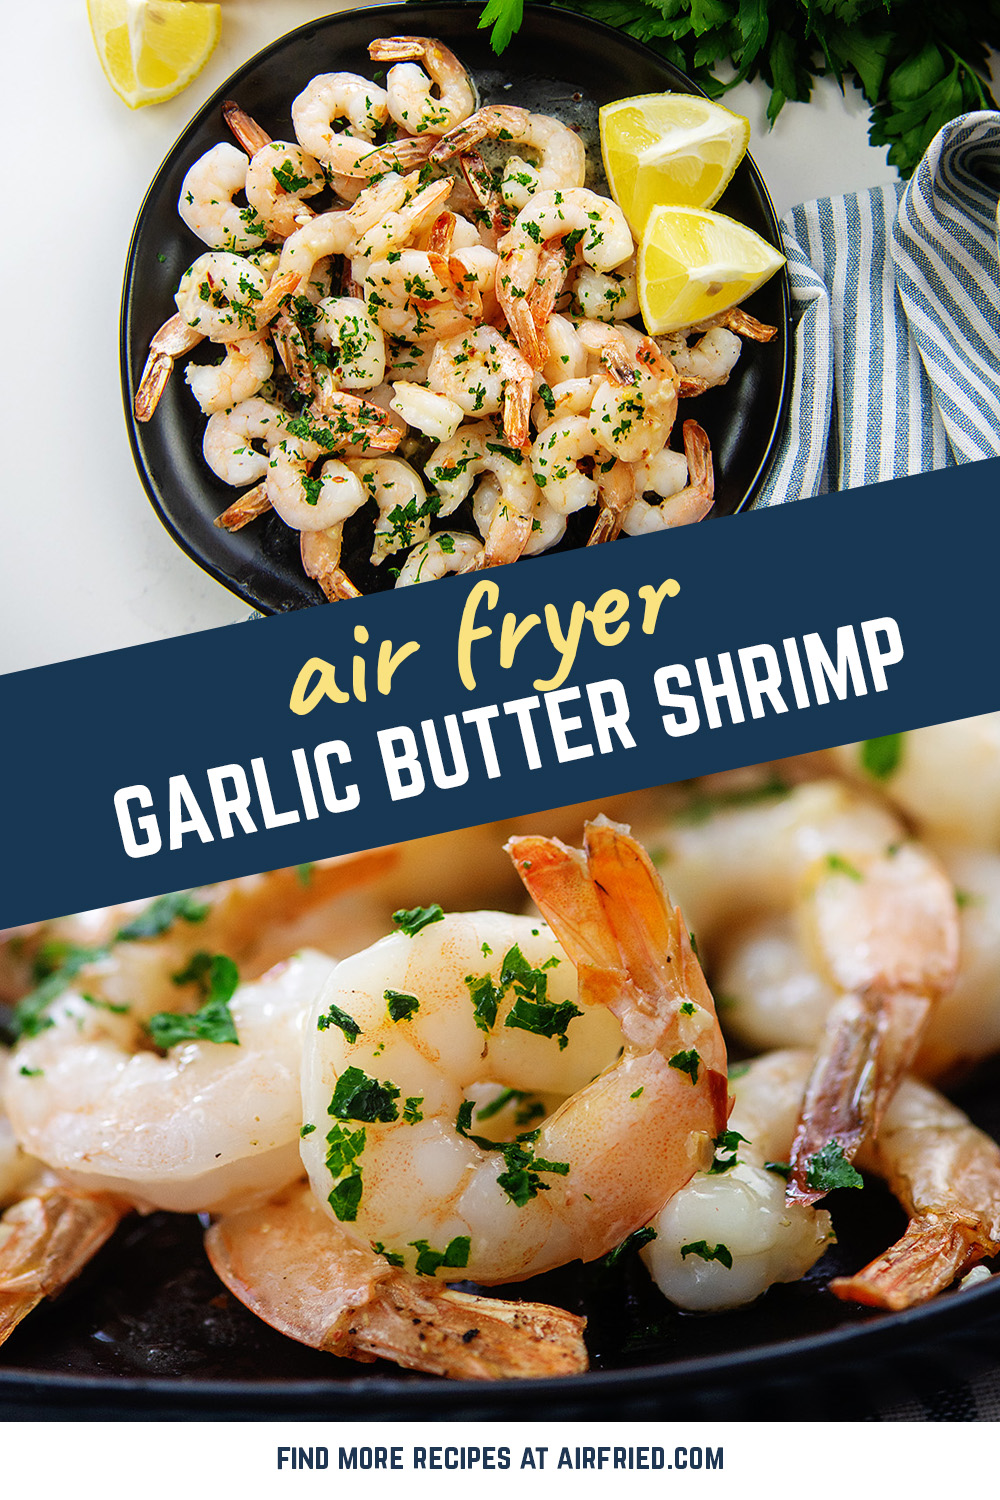 Garlic Butter Shrimp is cooked straight from the freezer in the air fryer! Ready in just 10 minutes.